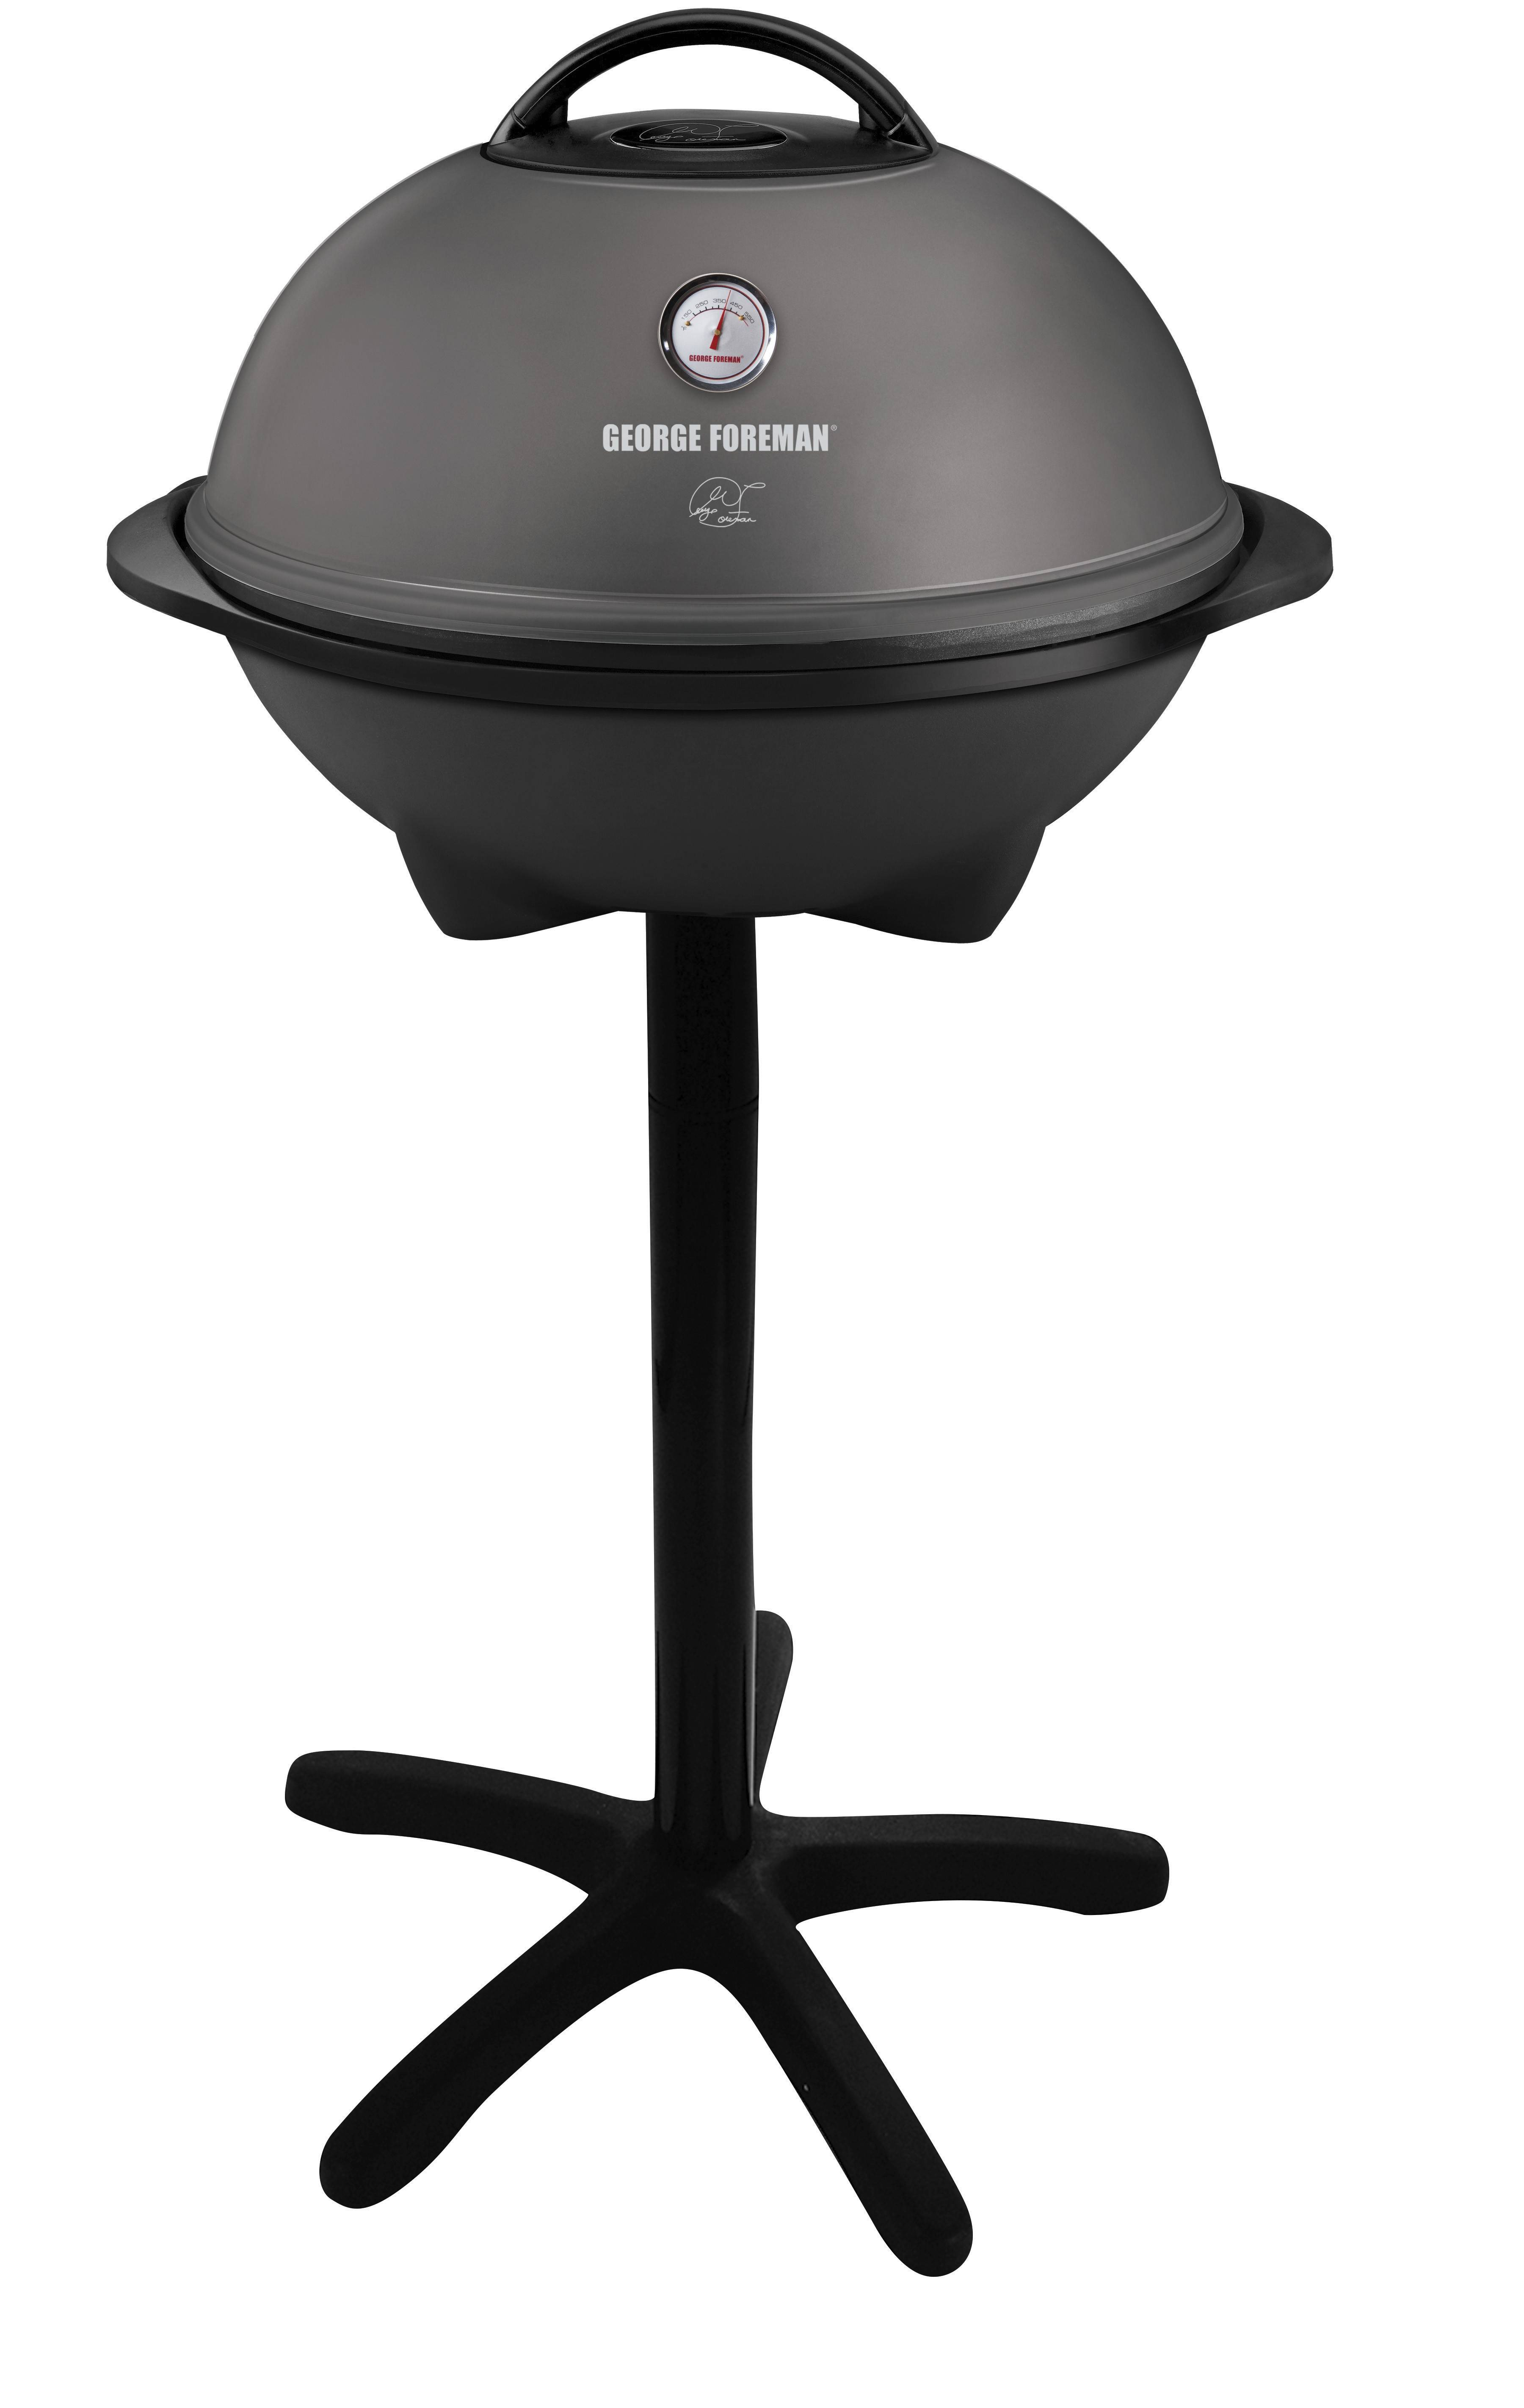 The George Foreman moves from the kitchen counter to the apartment balcony with its Indoor-Outdoor electric grill. It comes with a removable stand, and the removable cooking grate is large enough to hold 15 servings. $99. Available now on QVC; at brick and mortar stores later this year.